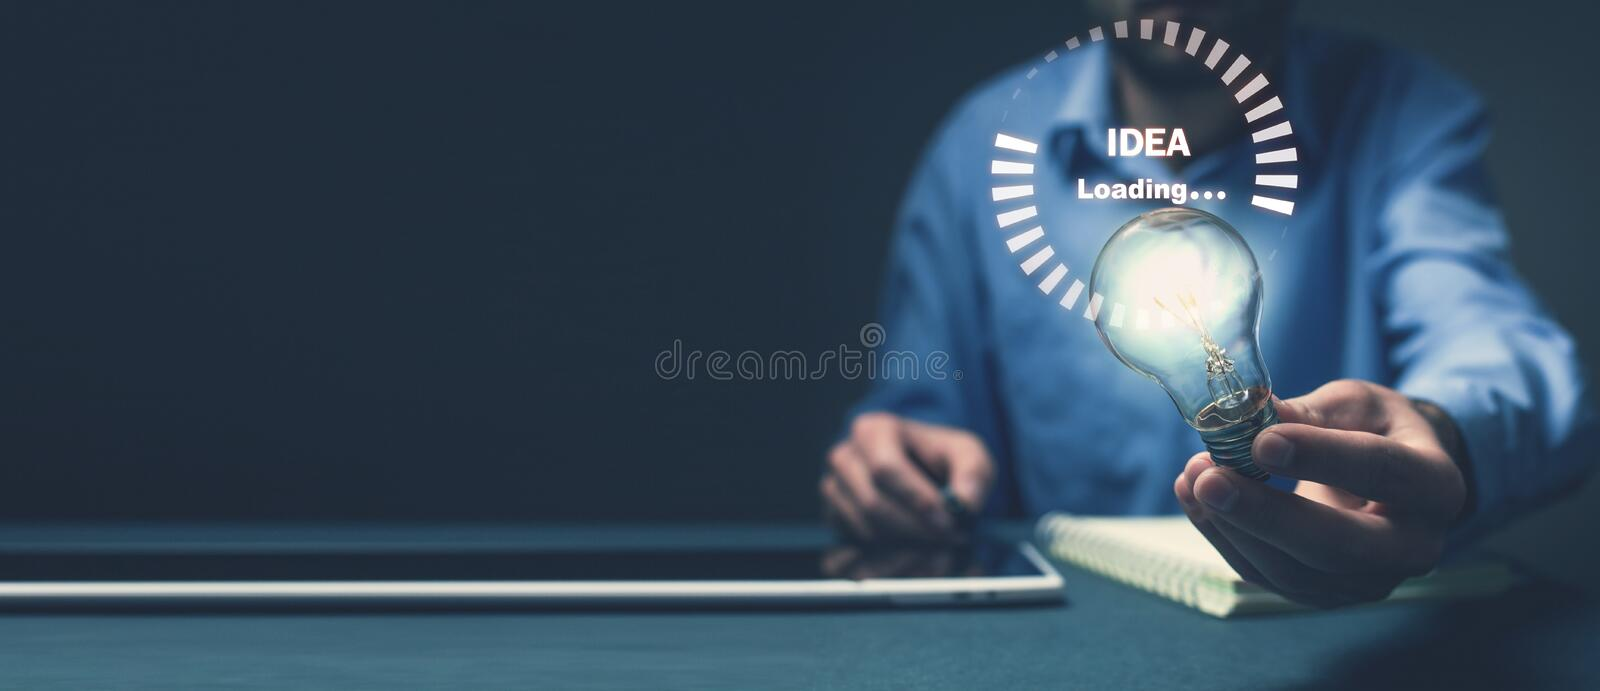 Man holding light bulb. Idea loading stock photo